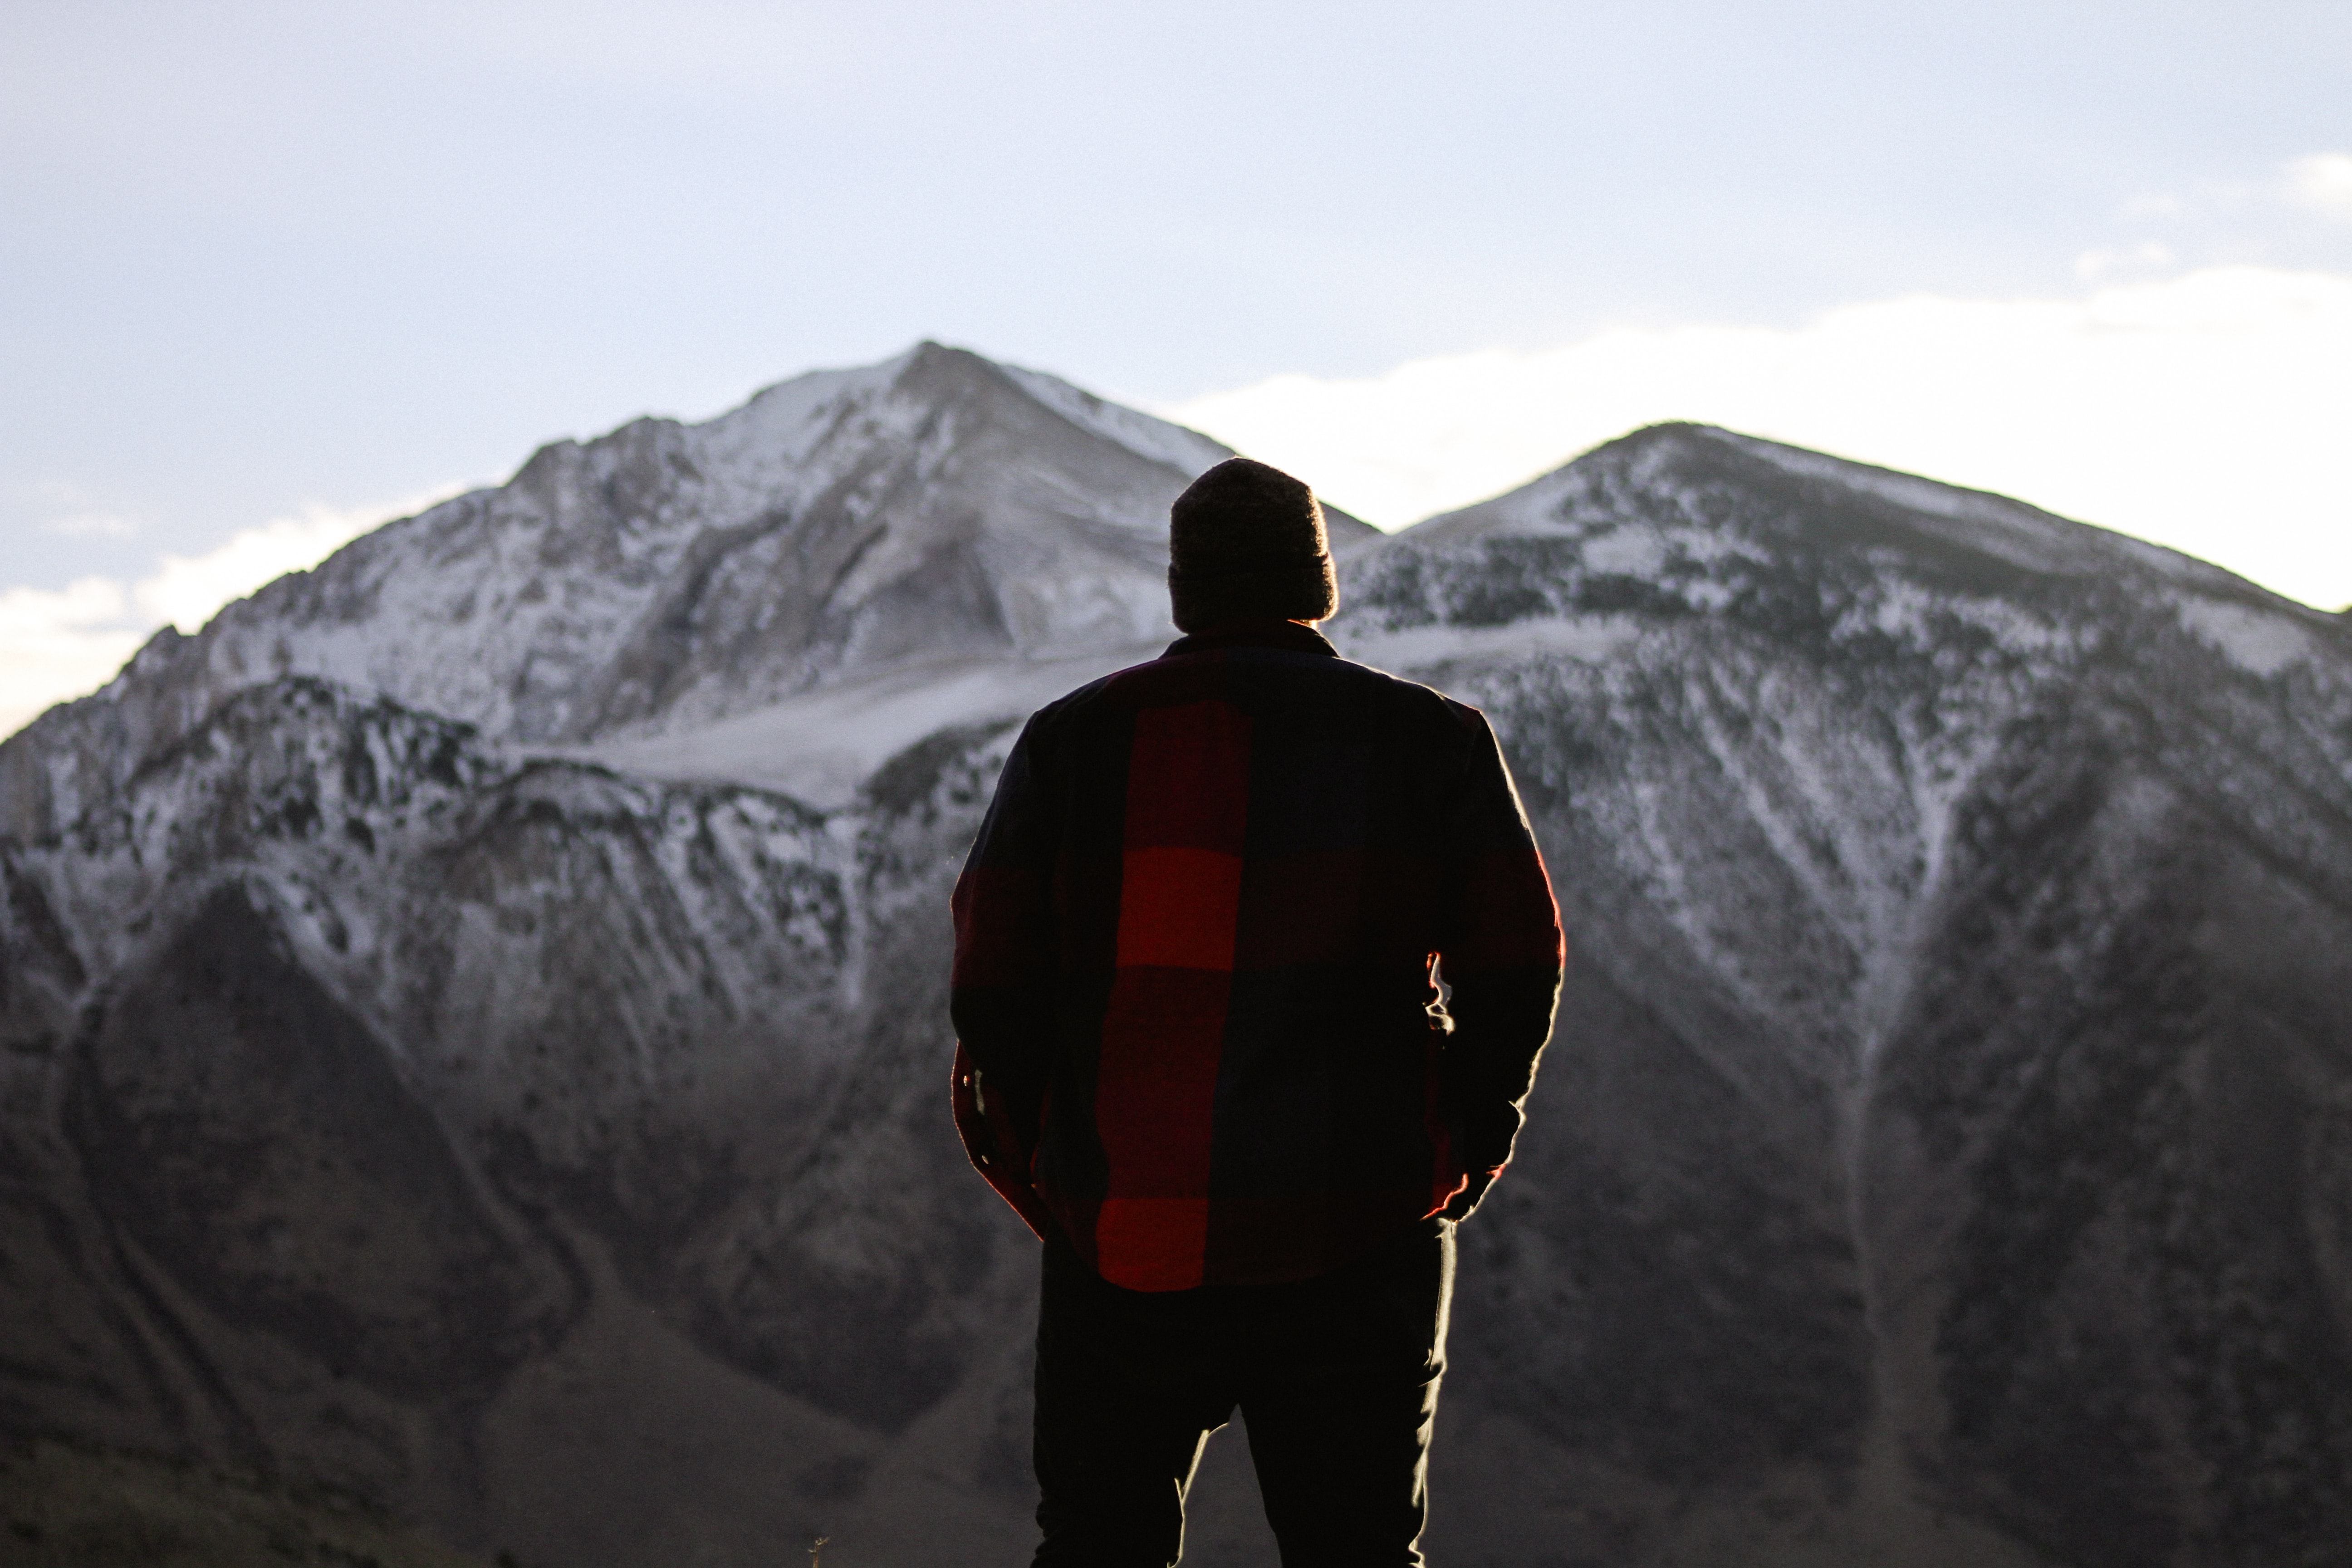 man standing while looking at the mountain